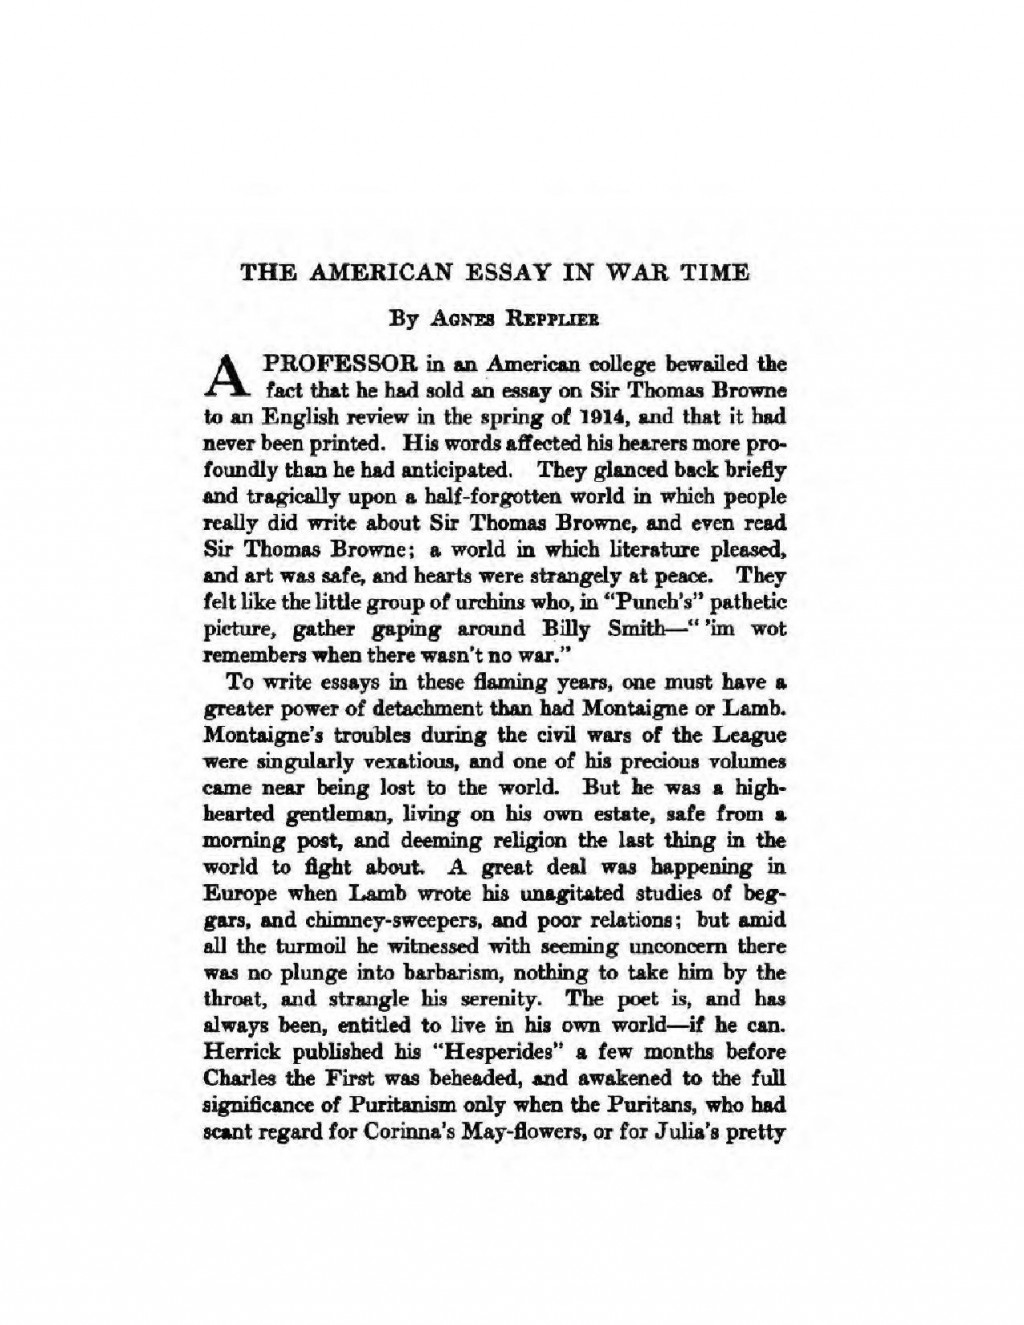 023 American Essay Example Page1 1275px The In War Time2c Agnes Repplier2c 1918 Striking Format Literature Topics Identity Titles Large